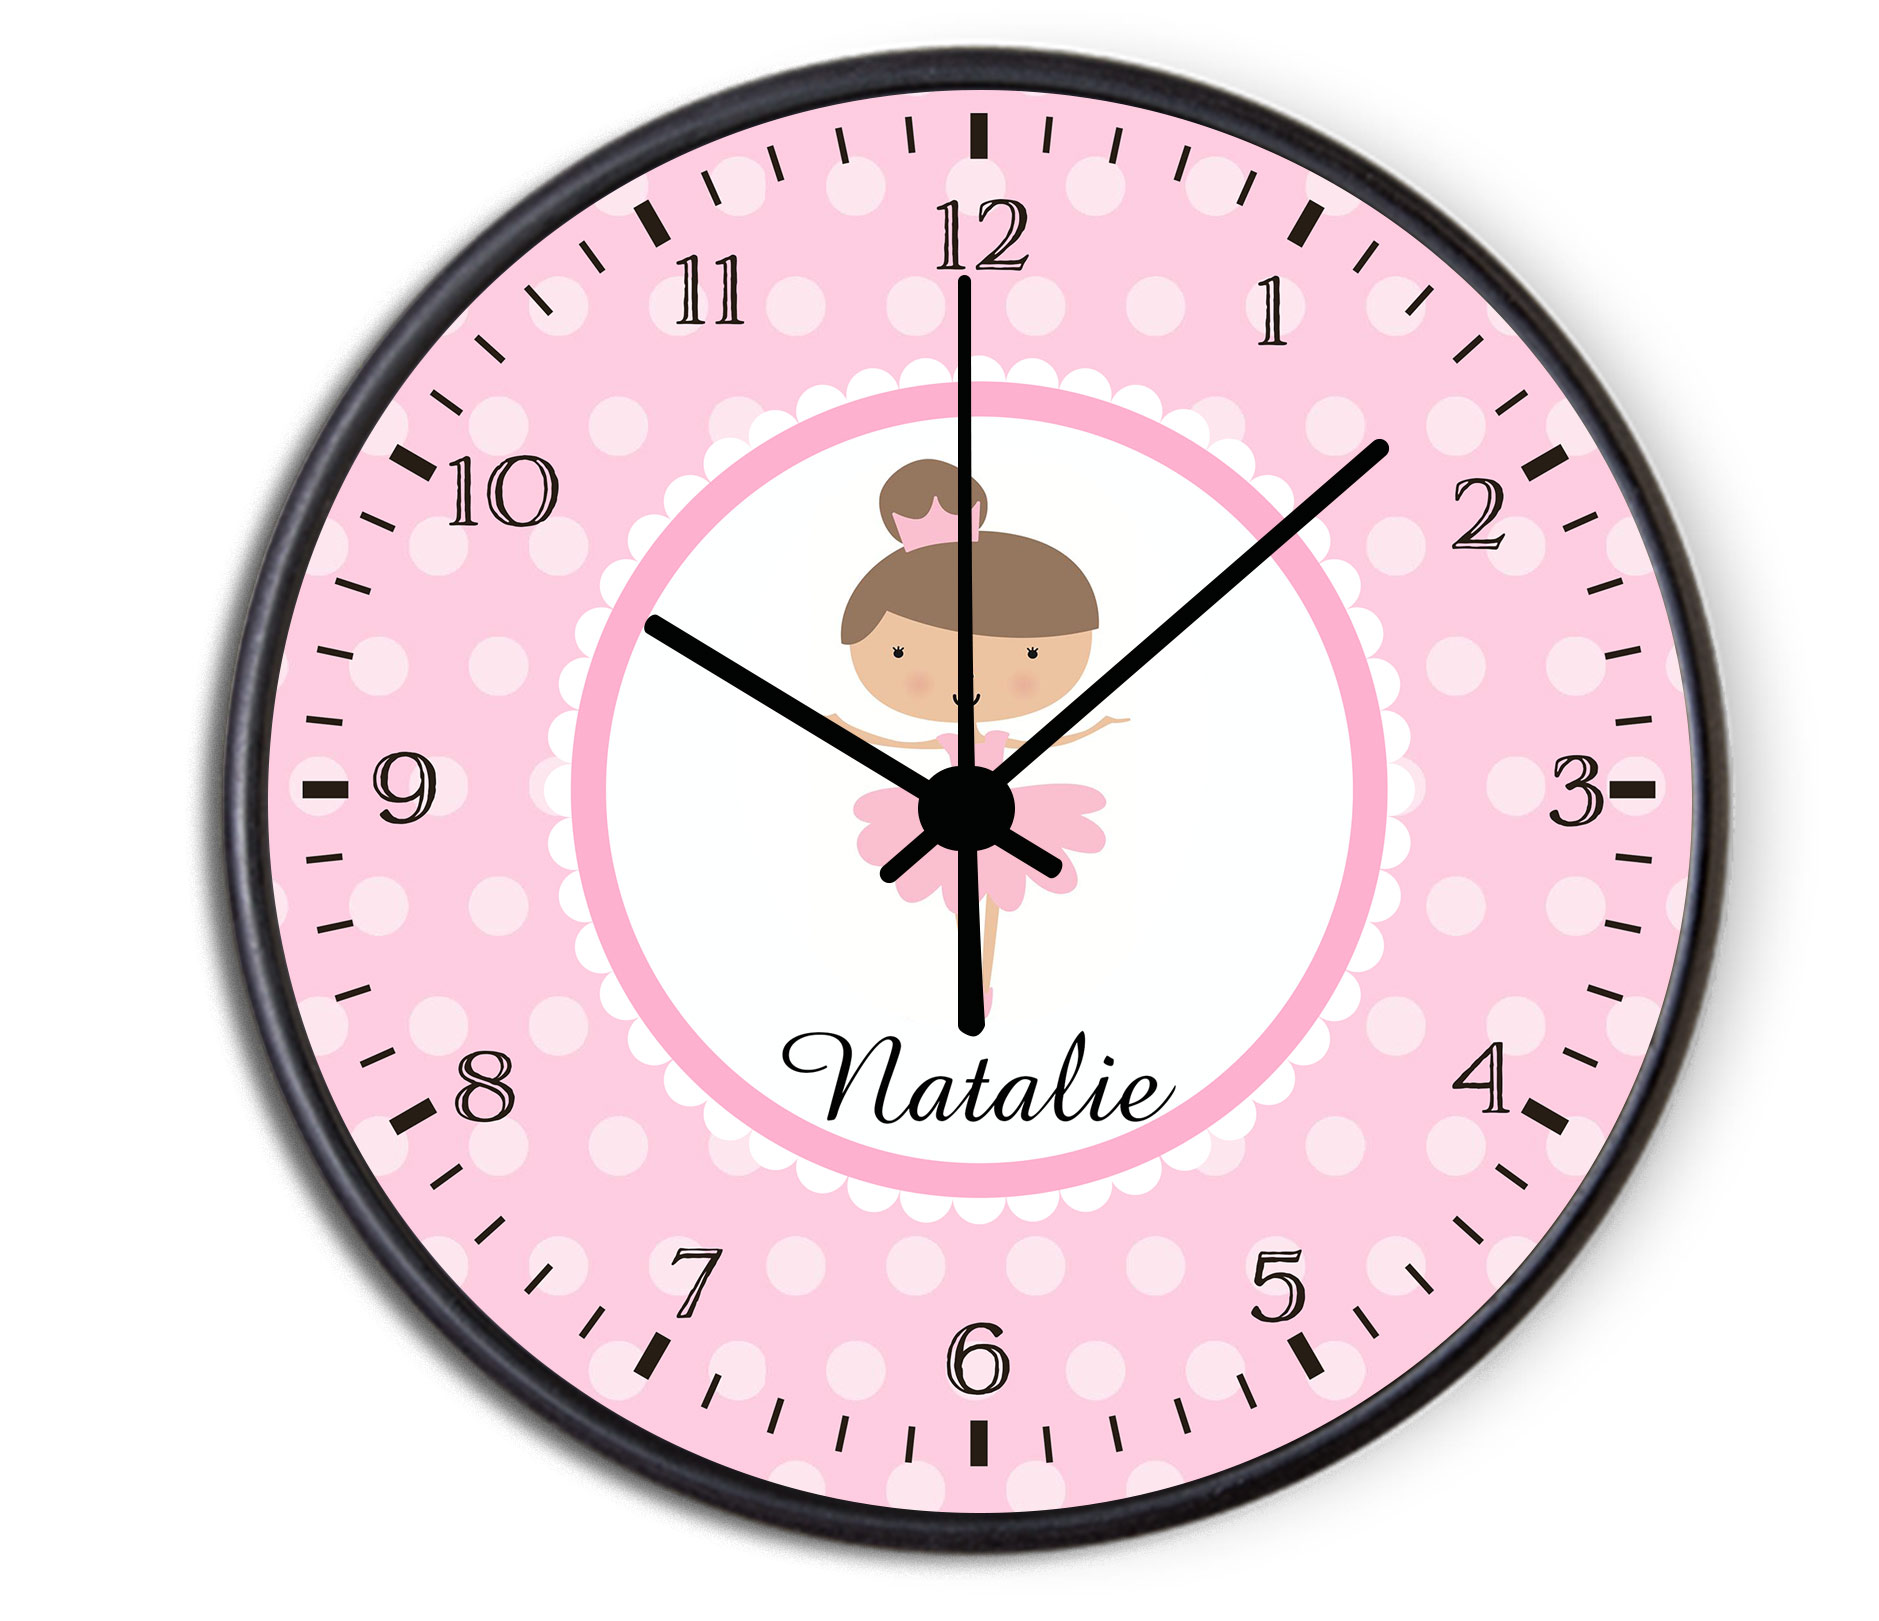 ballerina personalized childrens decorative wall clock. Black Bedroom Furniture Sets. Home Design Ideas